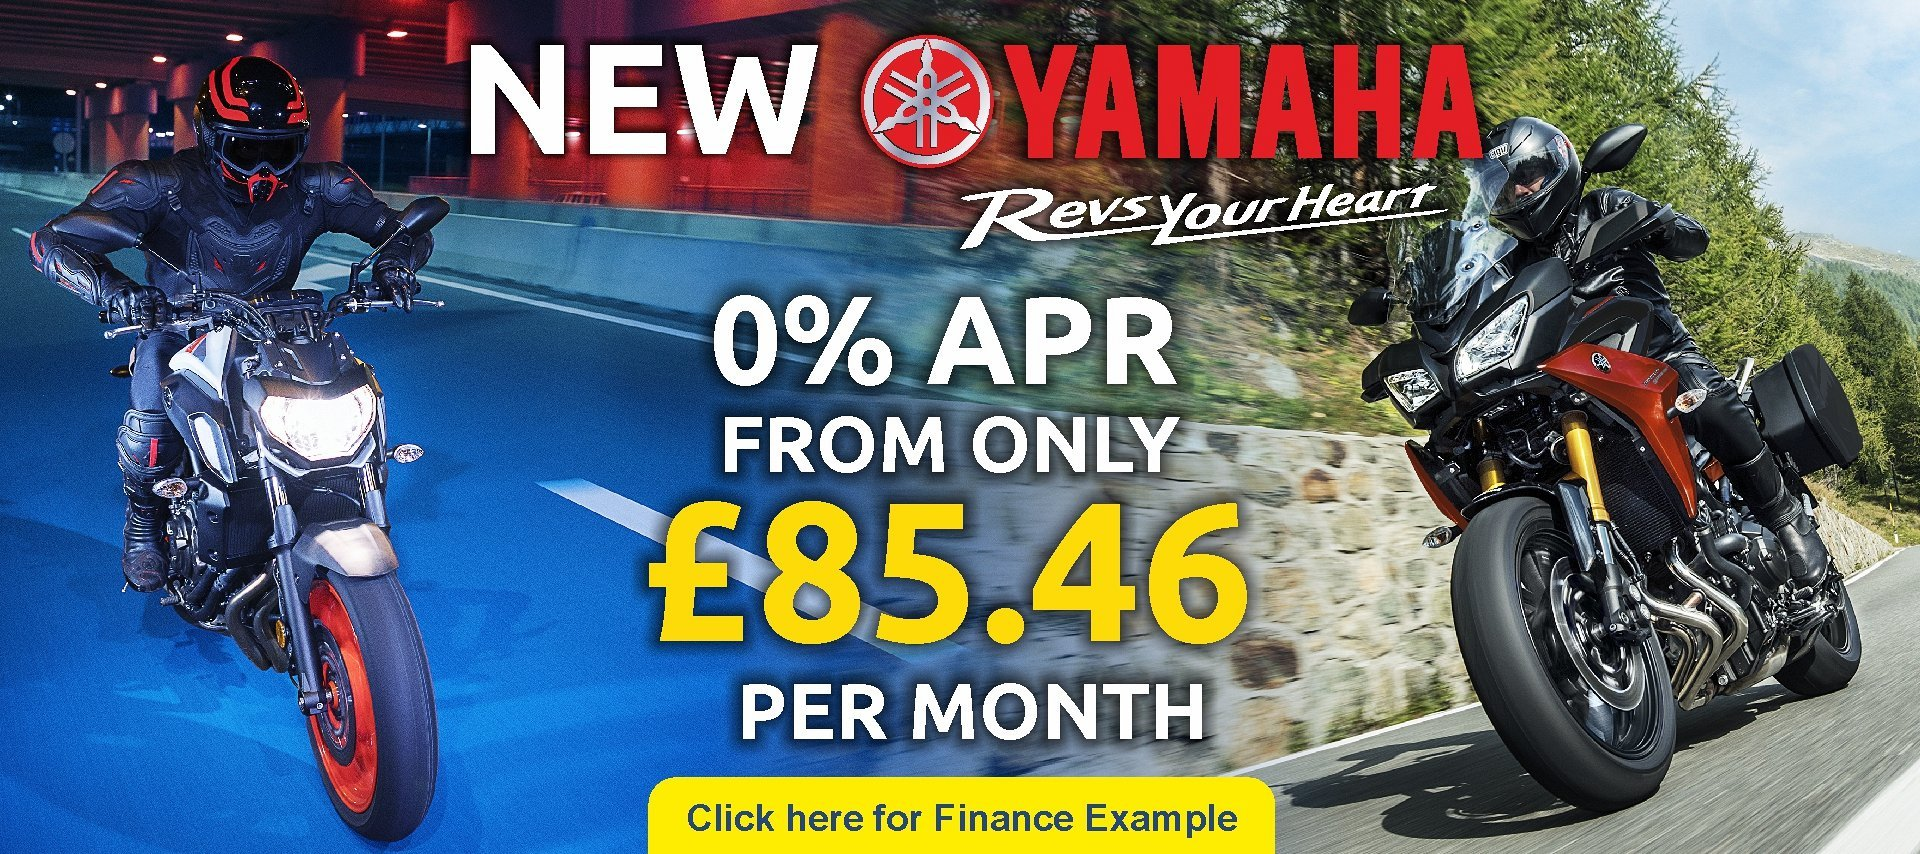 A New Yamaha from only £85 per month